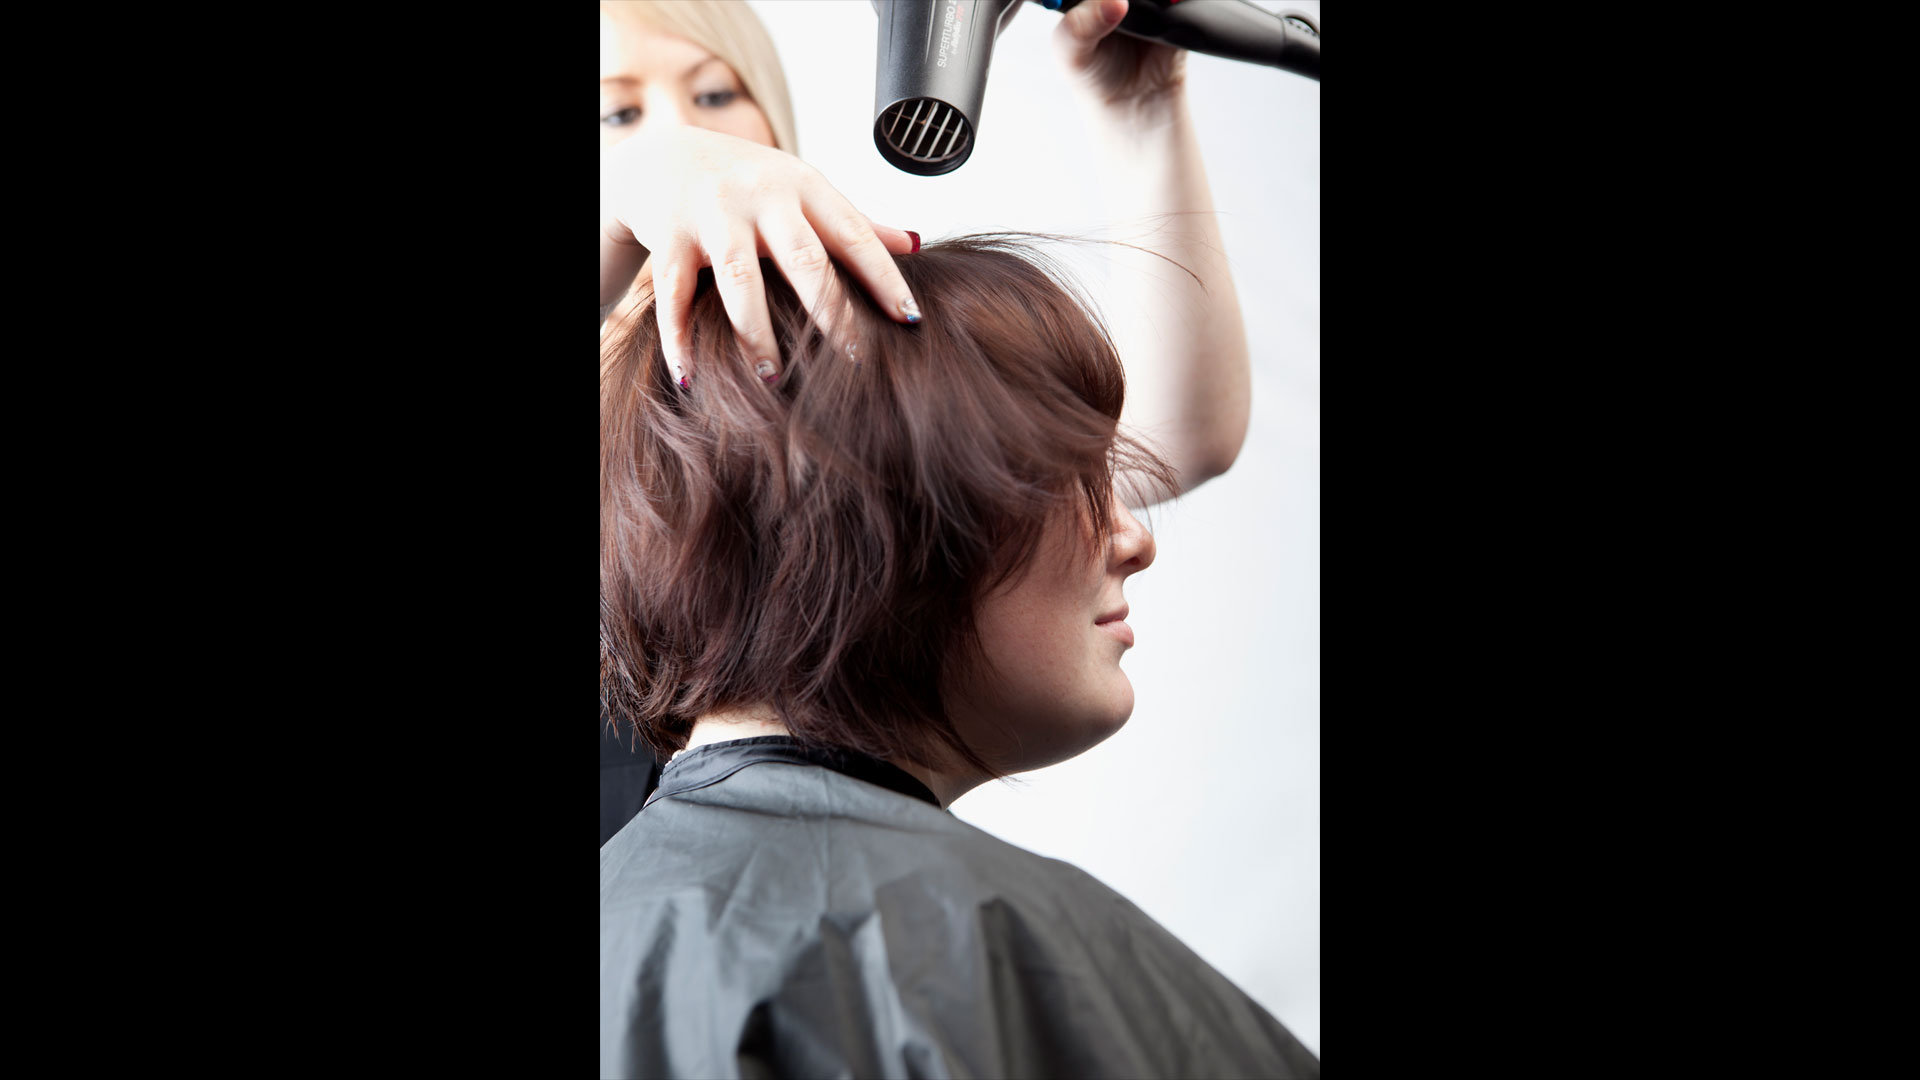 south-bank-facilities-beauty-and-hairdressing-hairdressing-salons-02.jpg